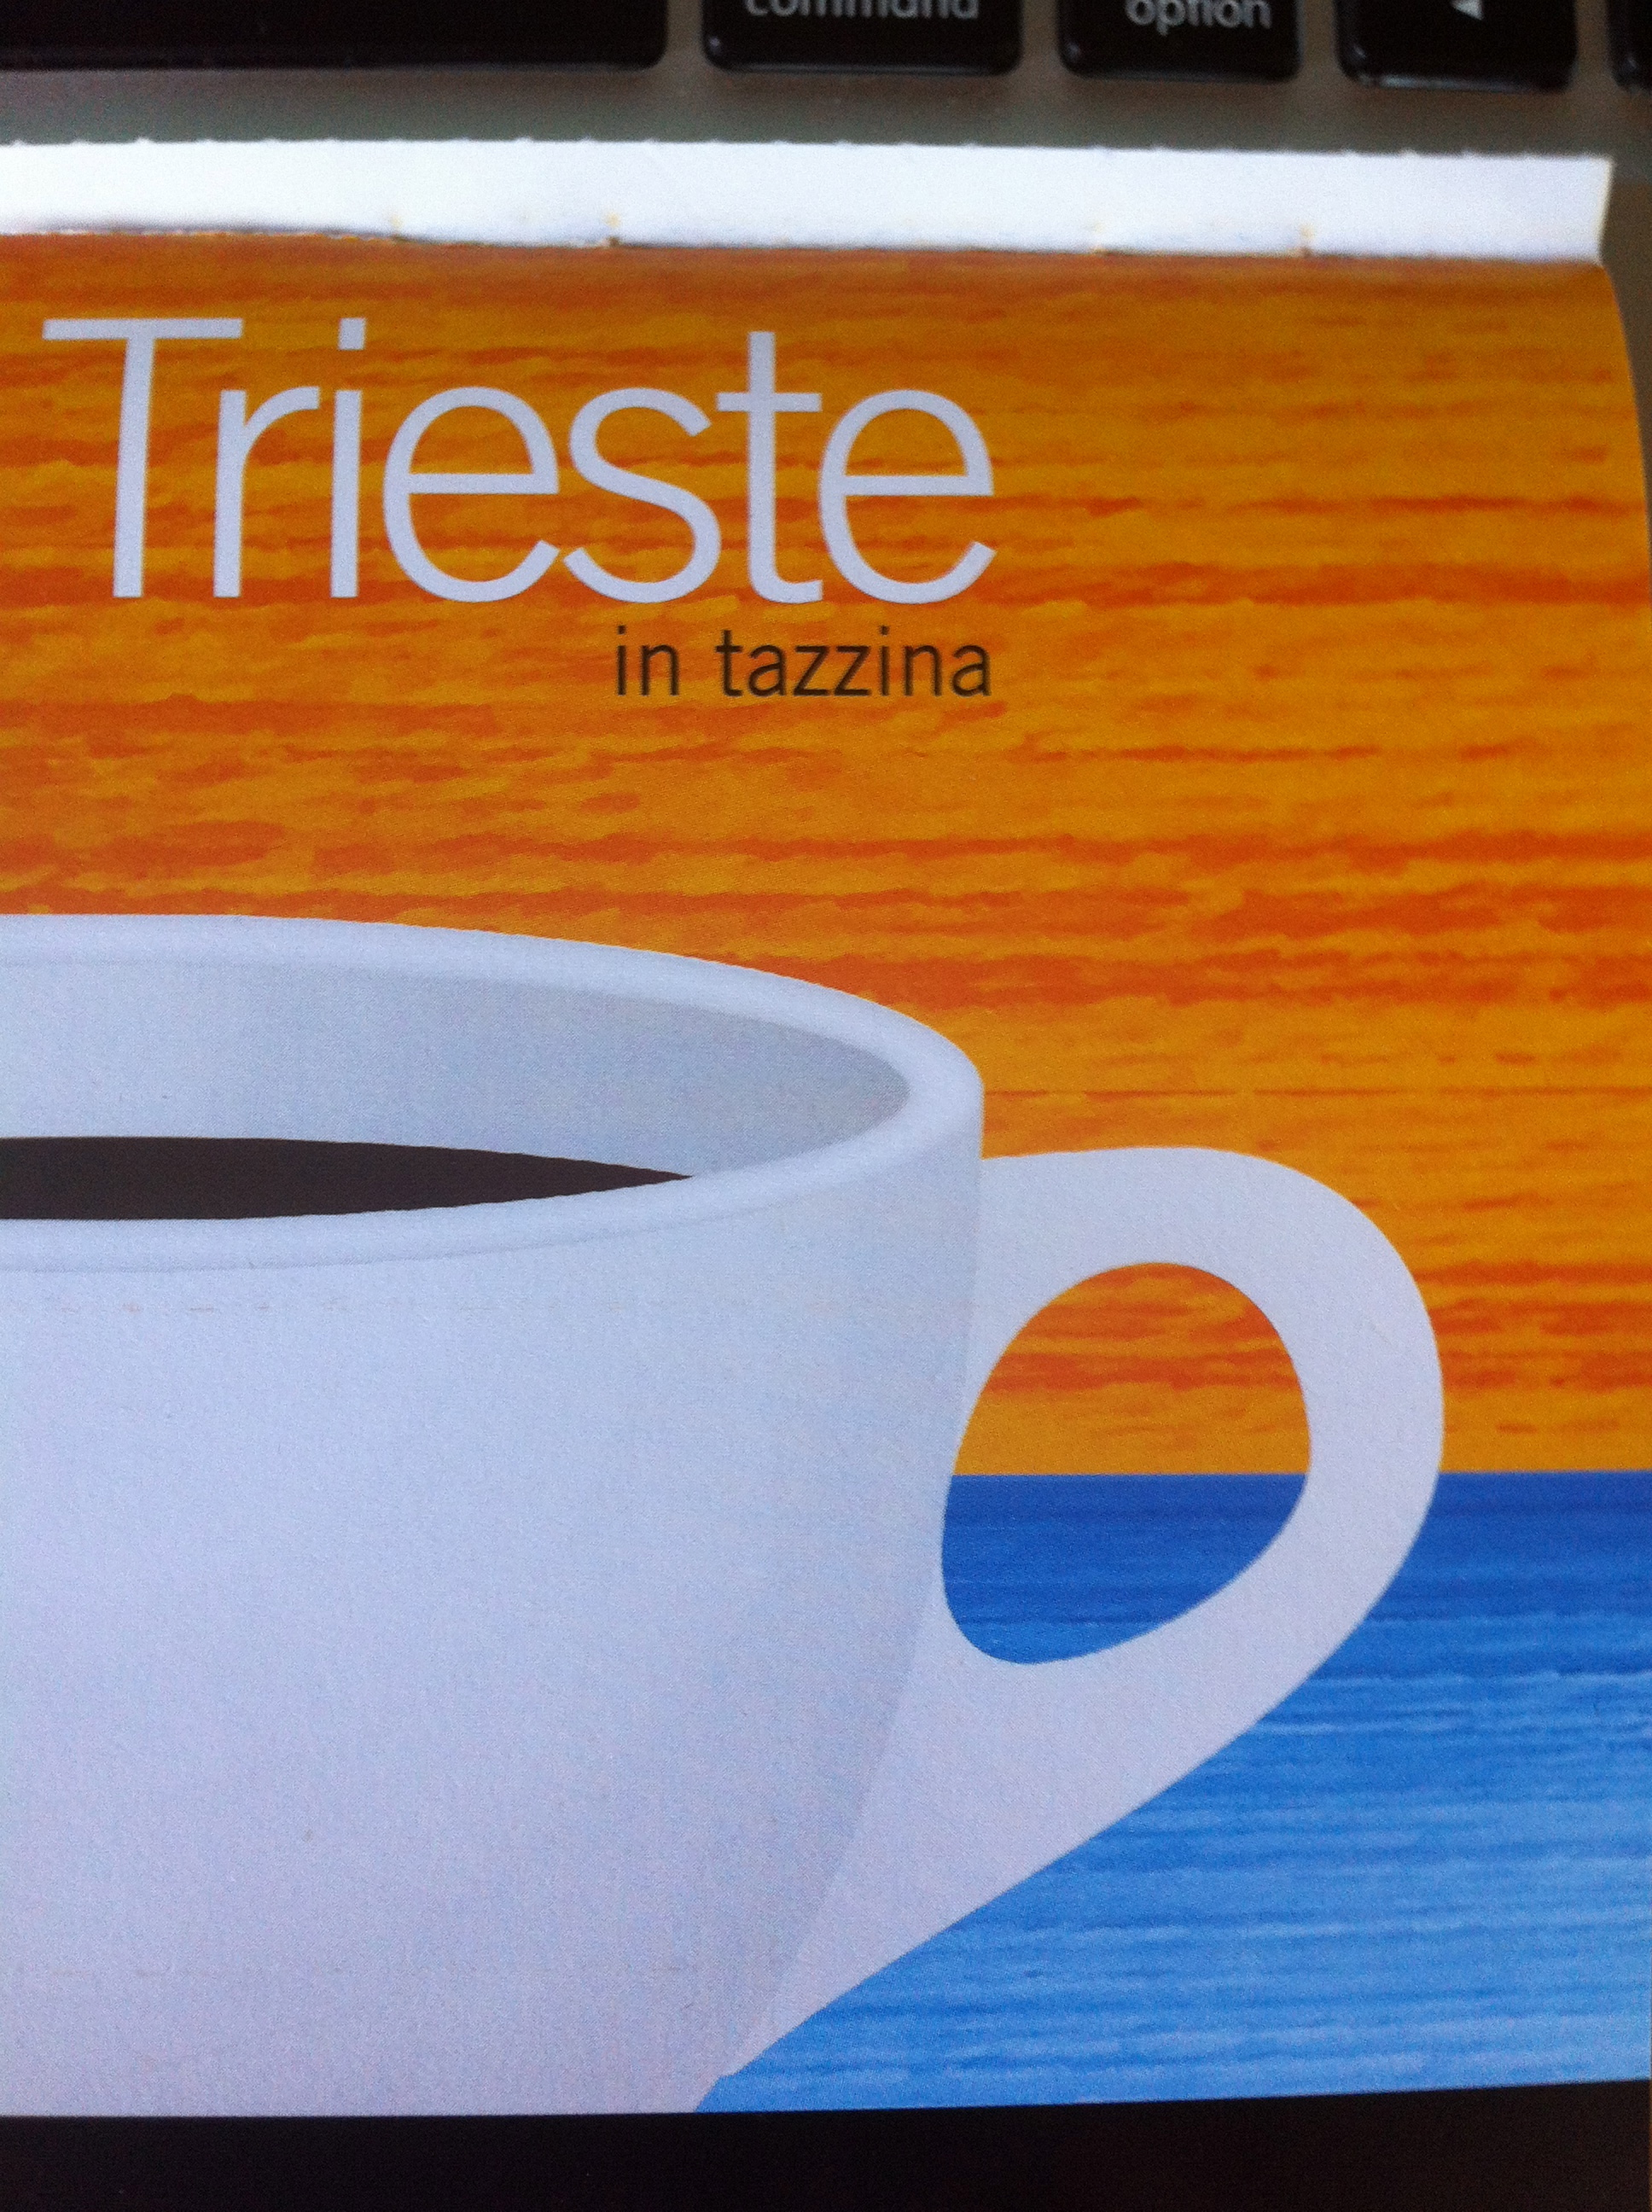 Coffee booklet - Trieste in tazzina